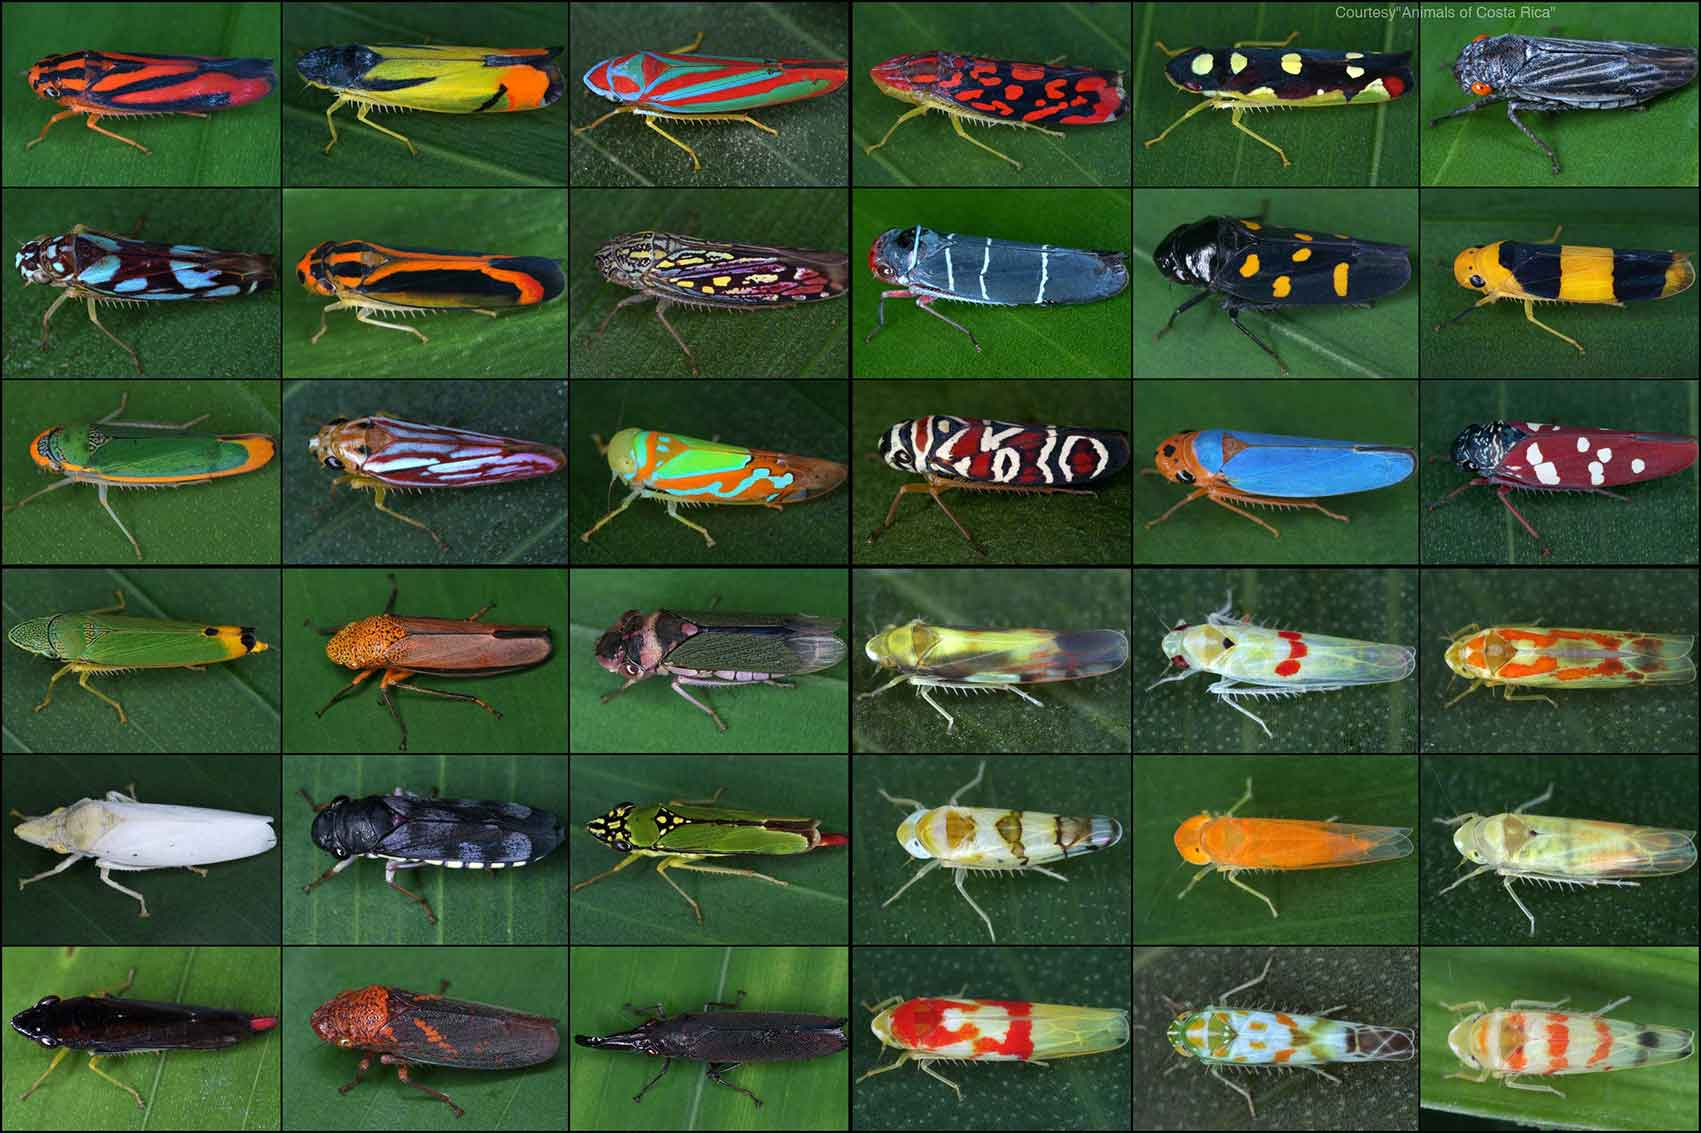 """Leafhoppers and planthoppers are incredibly diverse in insect families. Photo courtesy of the Animals app of Costa Rica. Photo courtesy of """"Animals of Costa Rica App."""""""